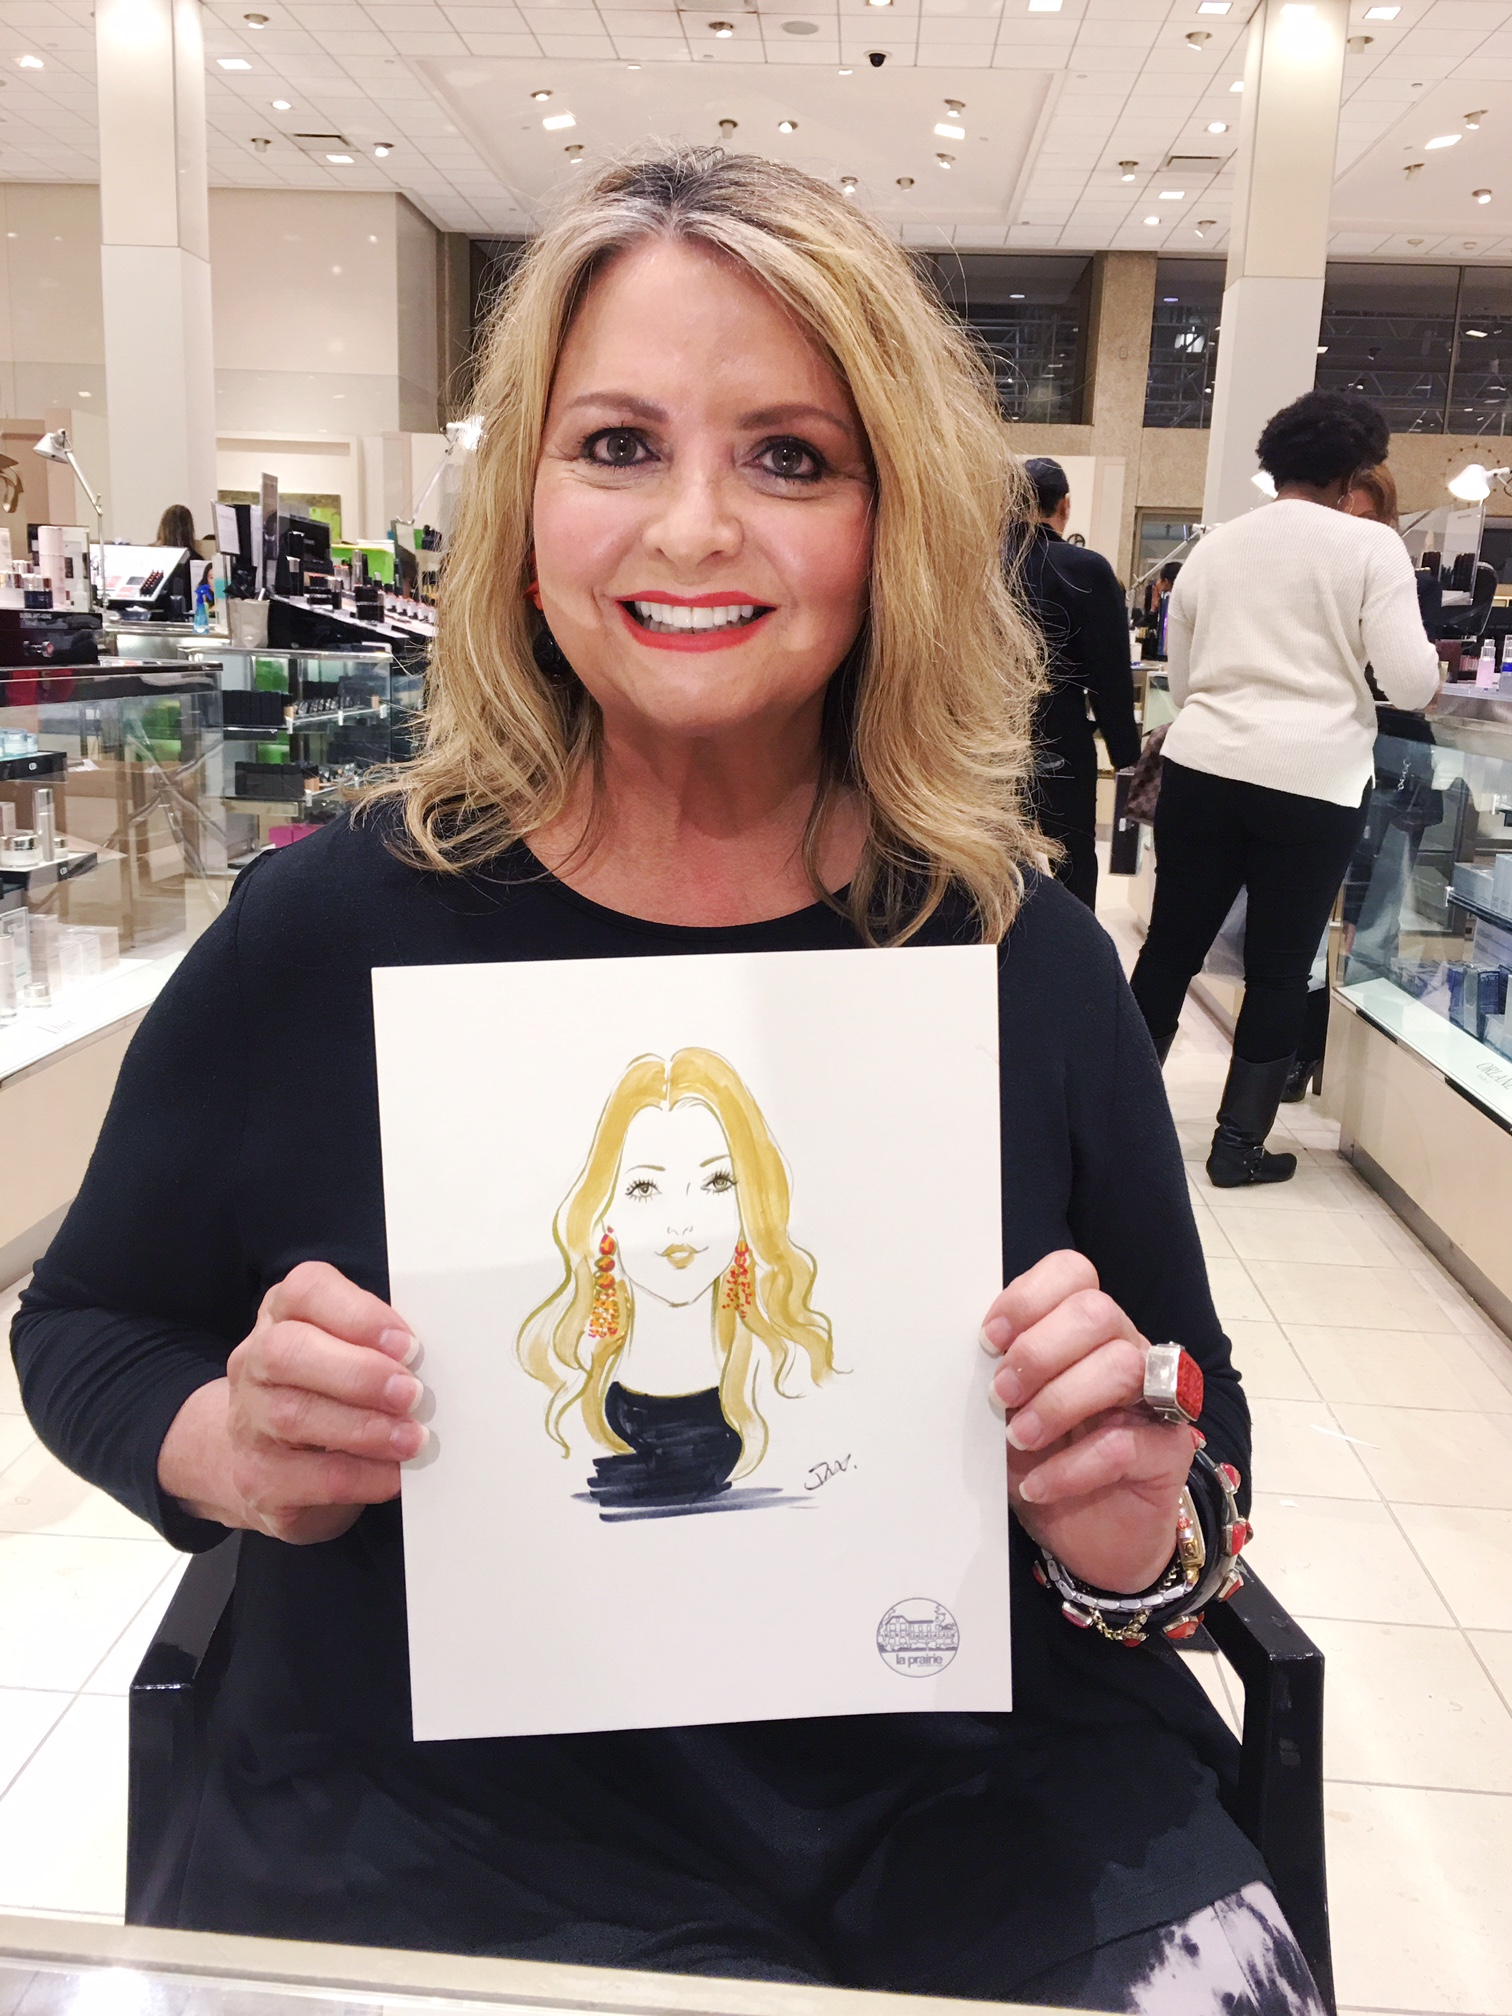 La-Prairie-live-sketch-event-at-Neiman-Marcus-San-Diego-by-fashion-illustrator-Rongrong-DeVoe--3.jpg